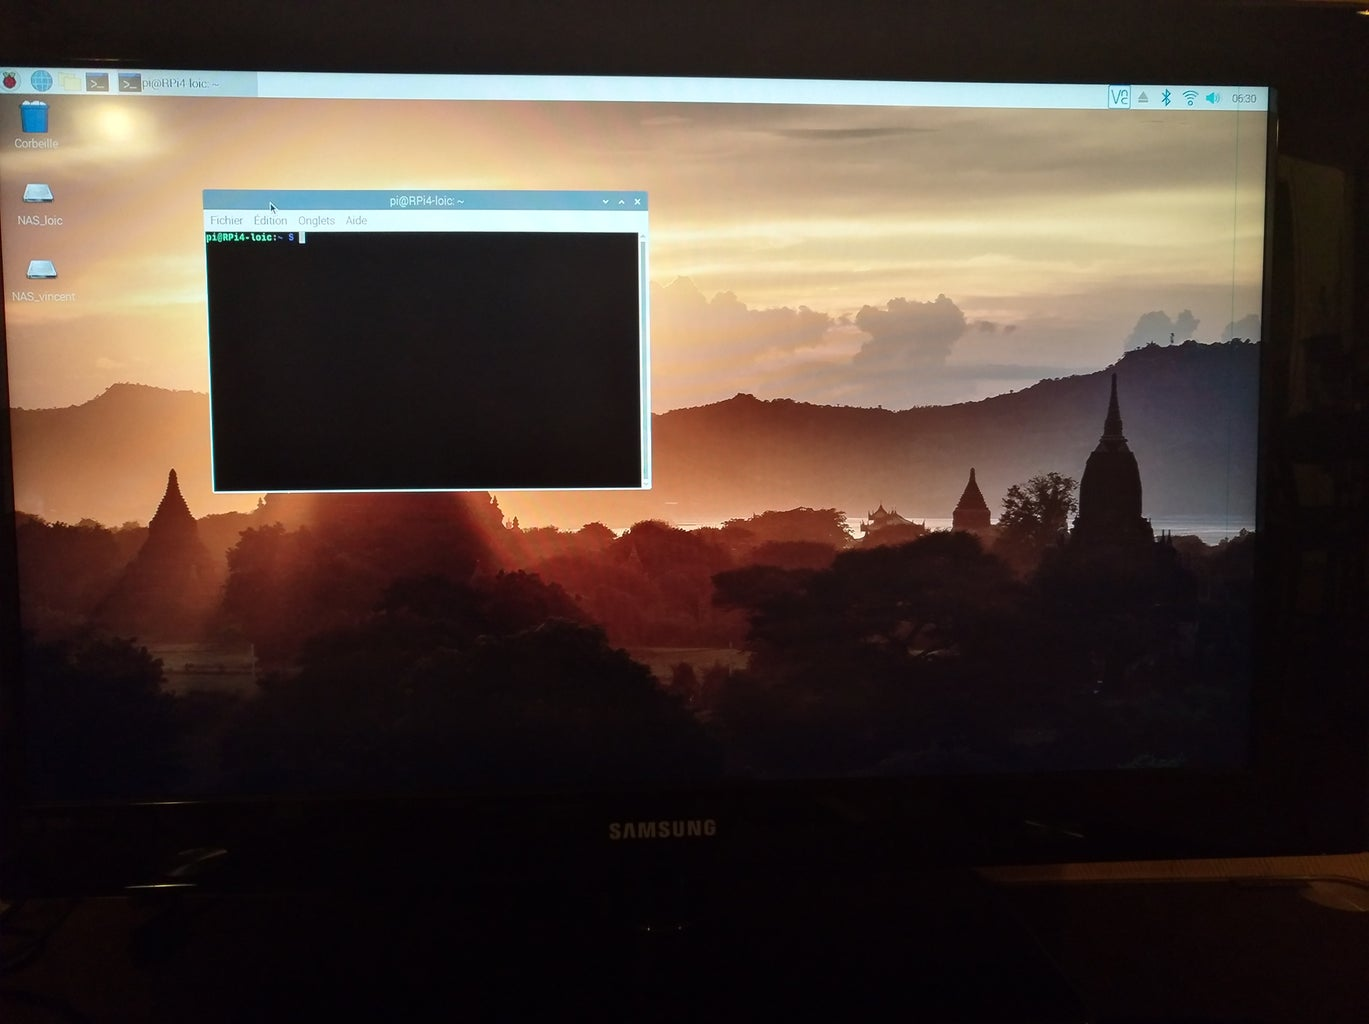 Way 1 : Connect to the Pi Using Screen, Keyboard, Mouse